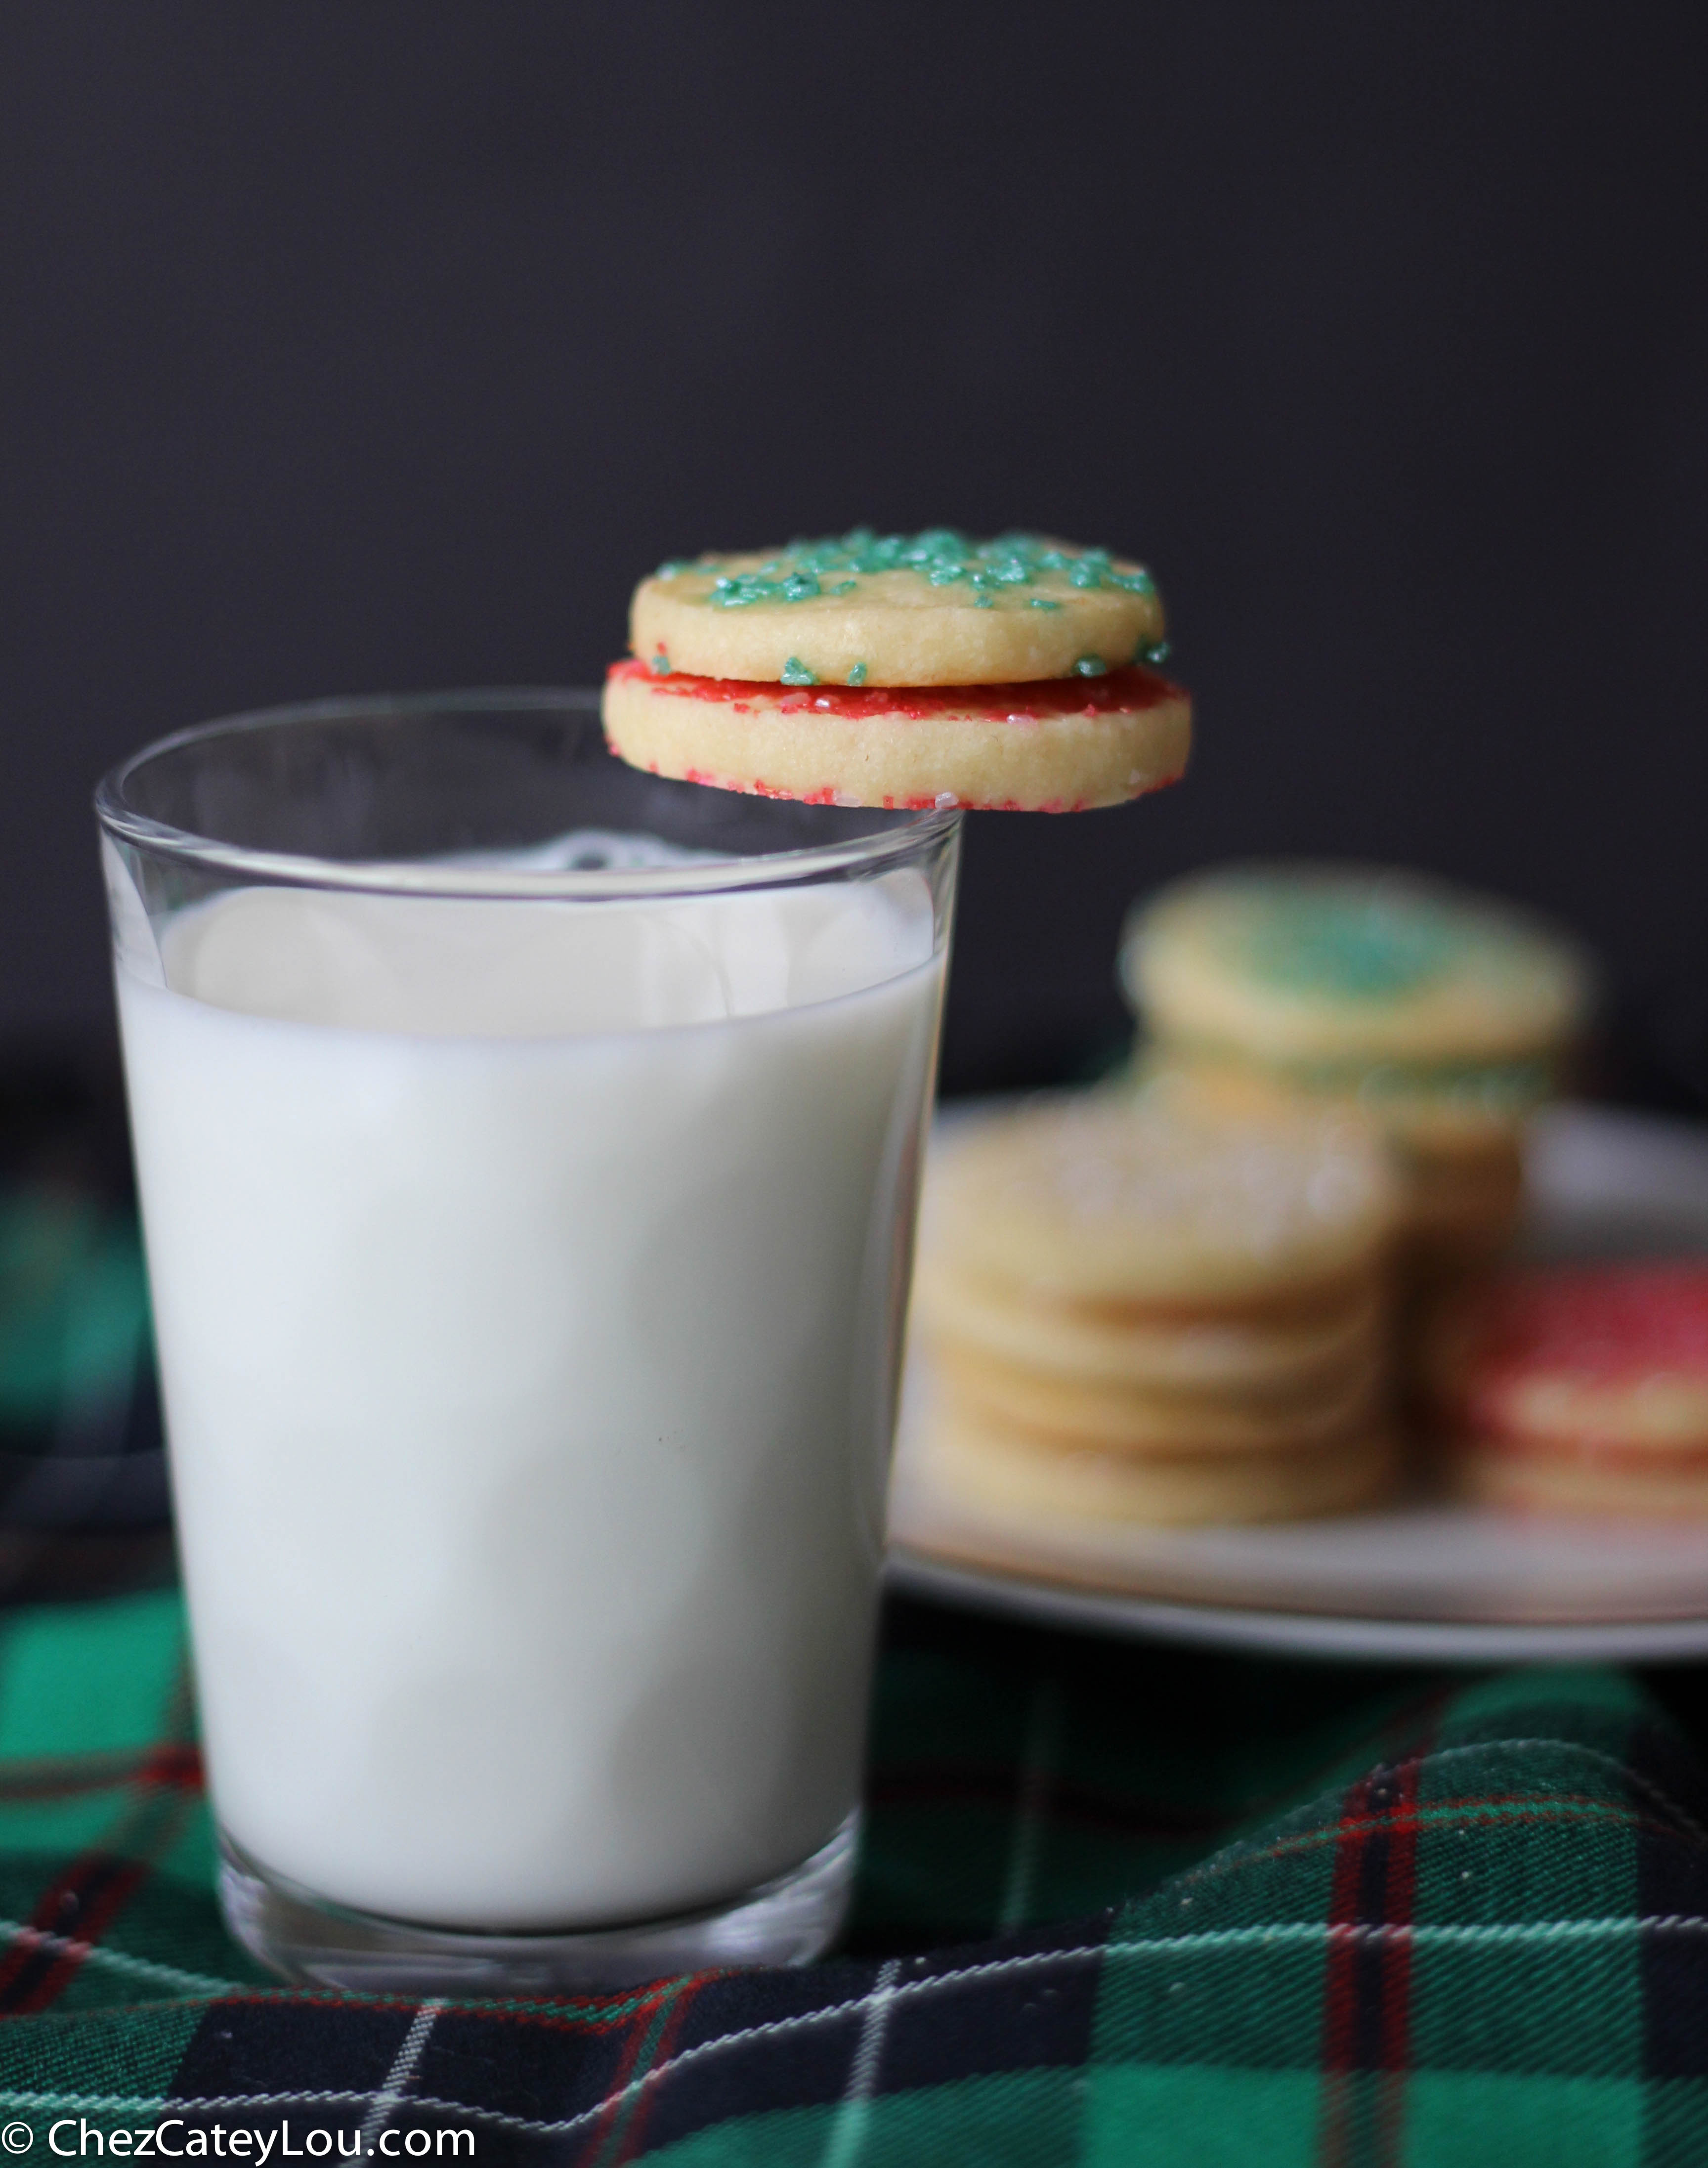 French Butter Cookies, also called a Sable | ChezCateyLou.com